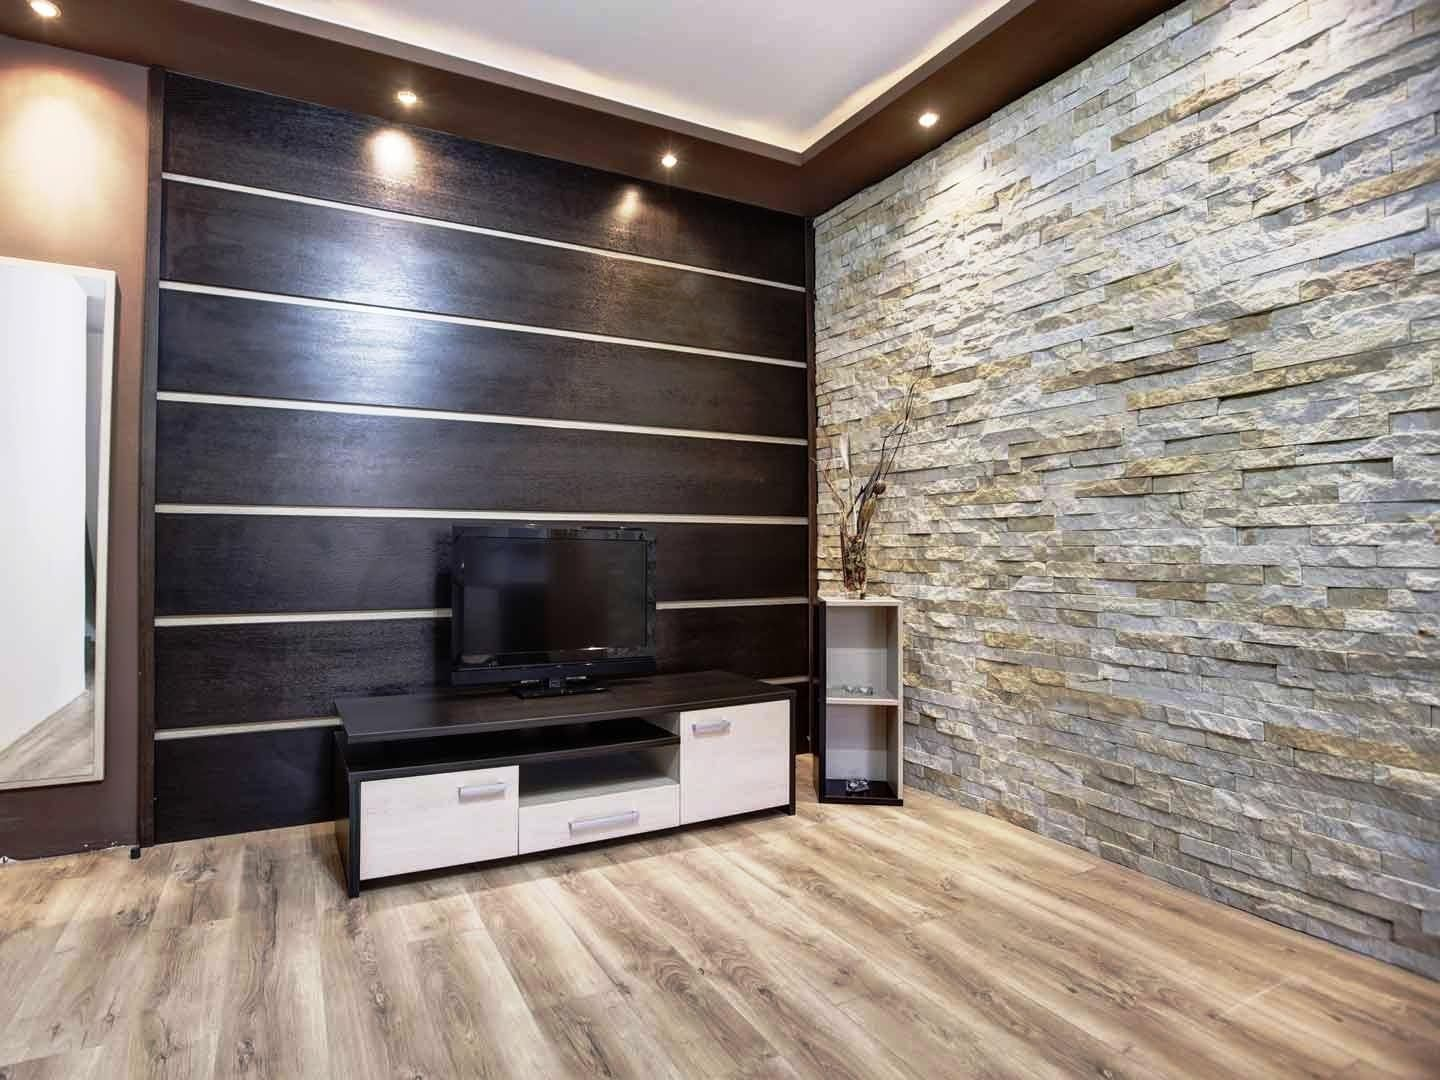 14 Ceramic Tile Ideas Hardwood Accent Counter Top Porcelain Decorative Wall Panels Textured Wall Panels Cheap Interior Wall Paneling